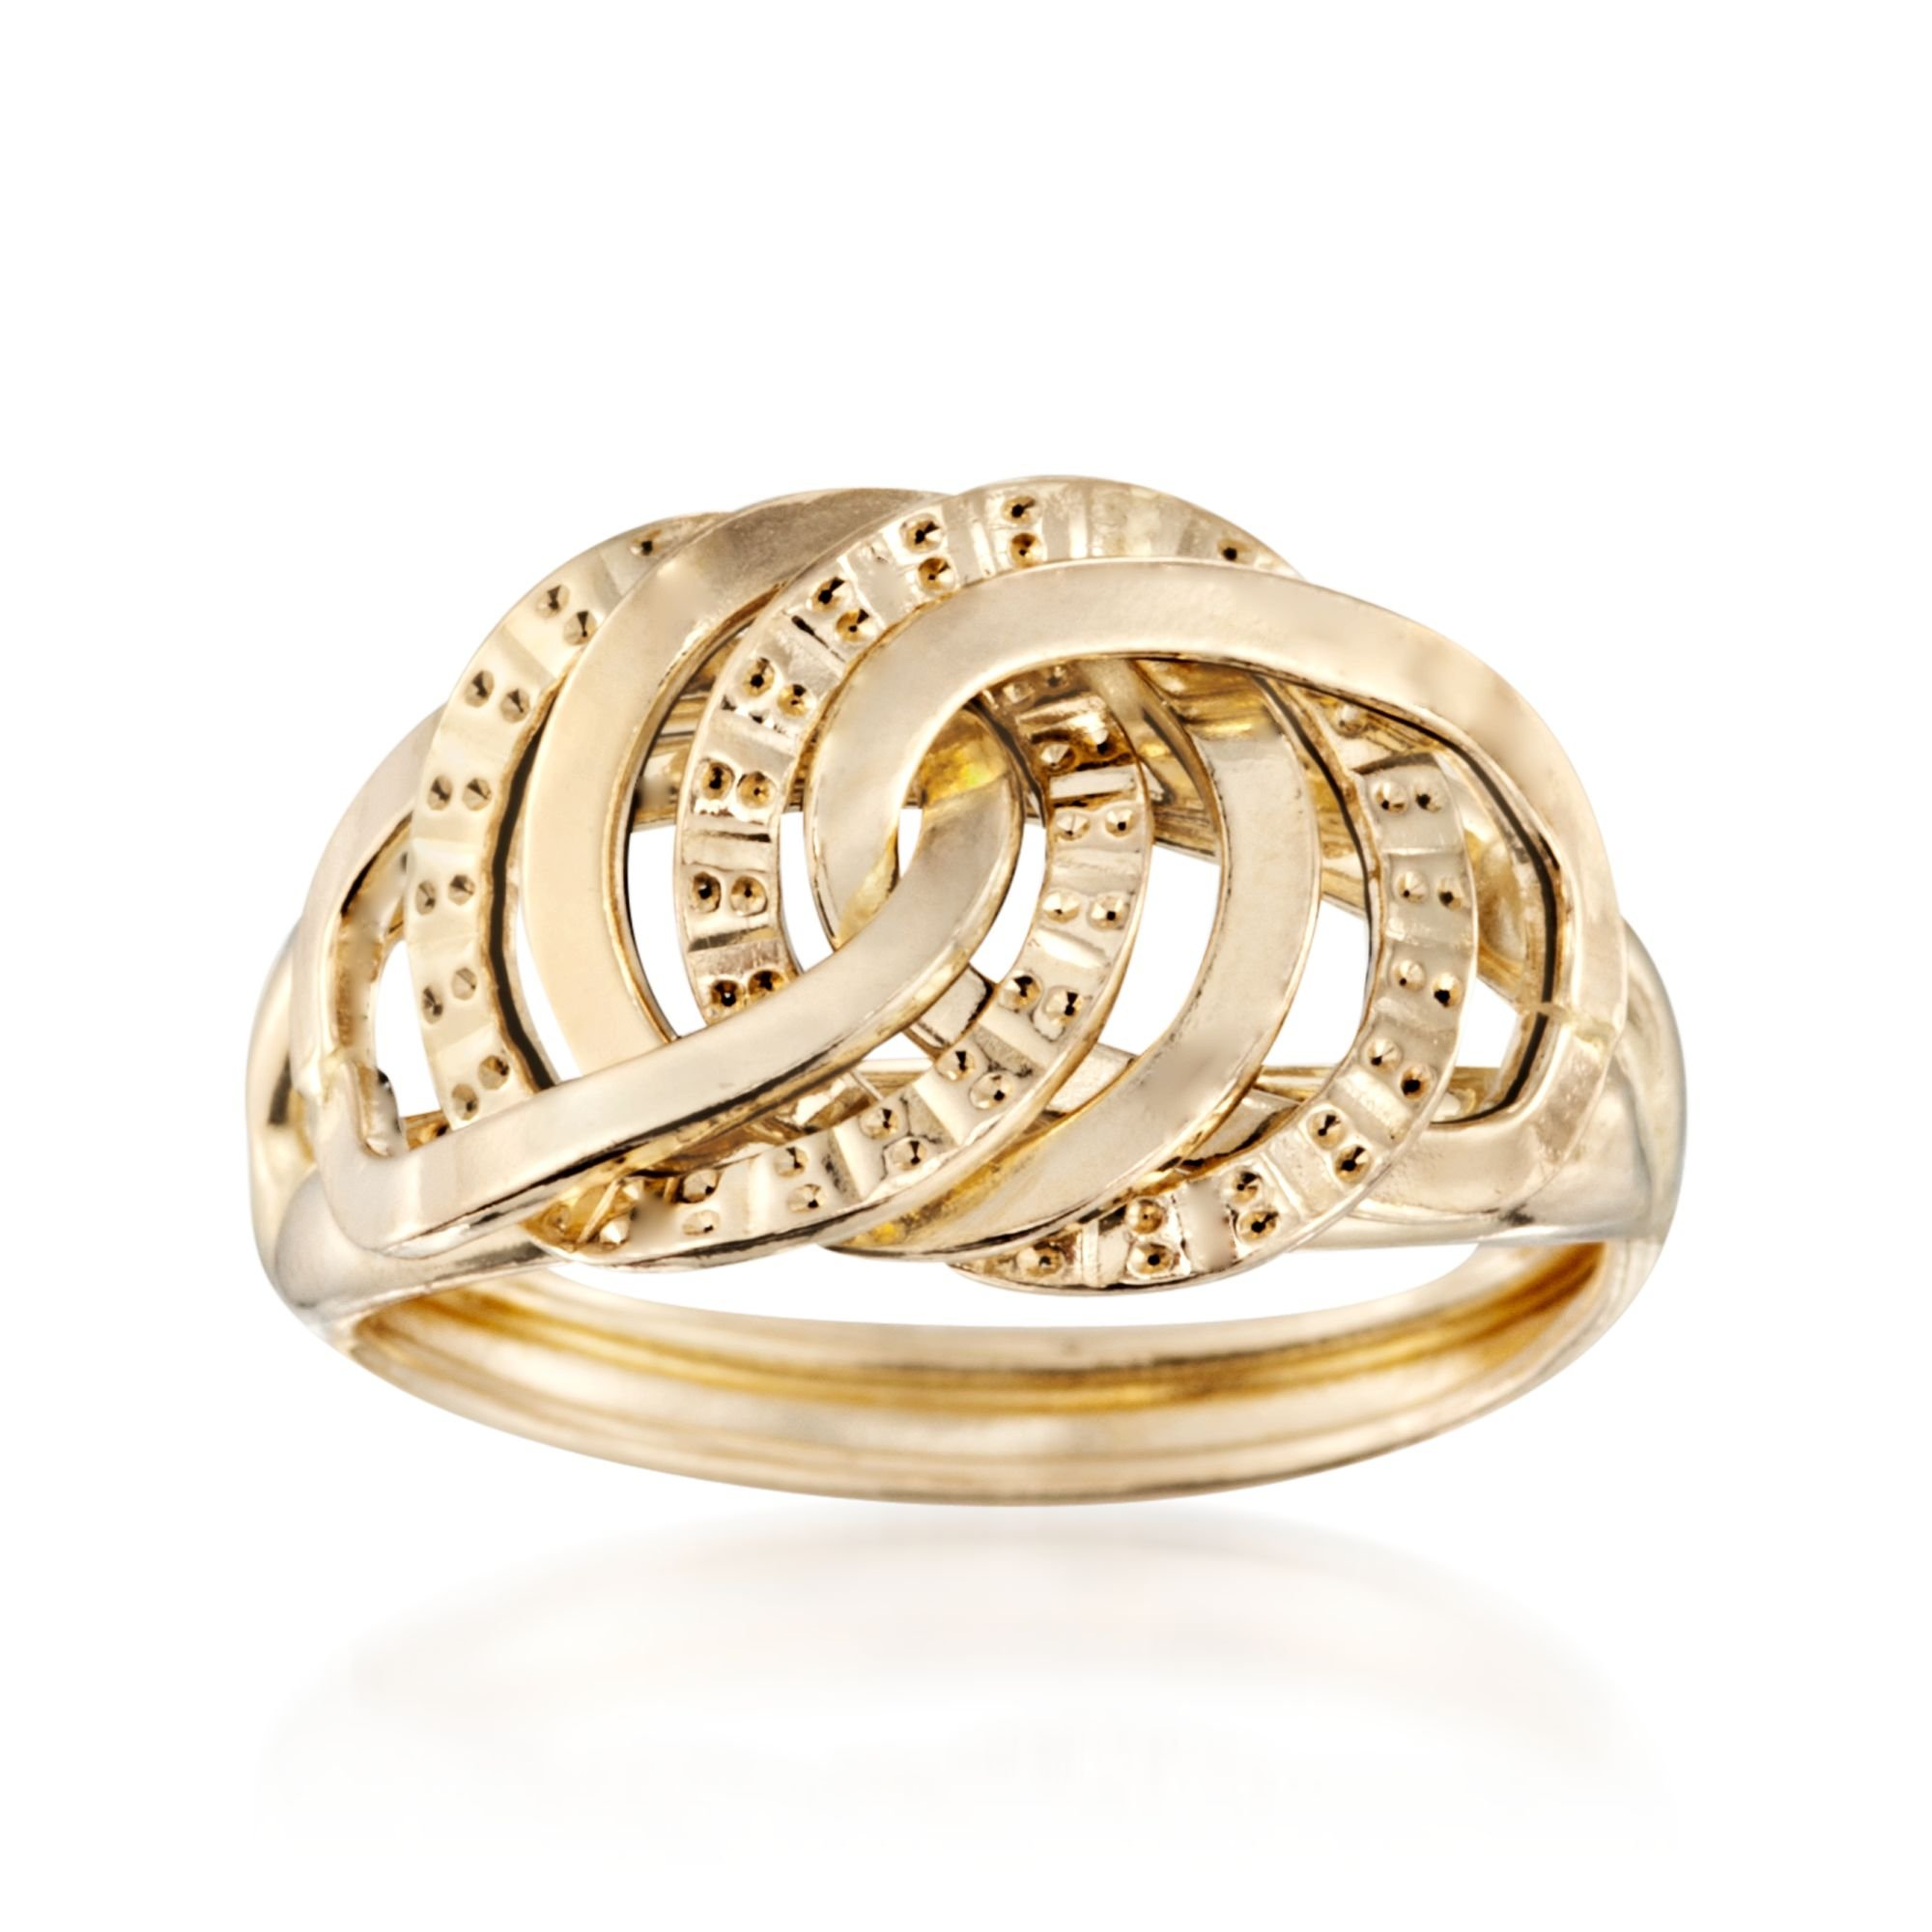 Ross-Simons Italian 14kt Yellow Gold Interlocking-Link Ring